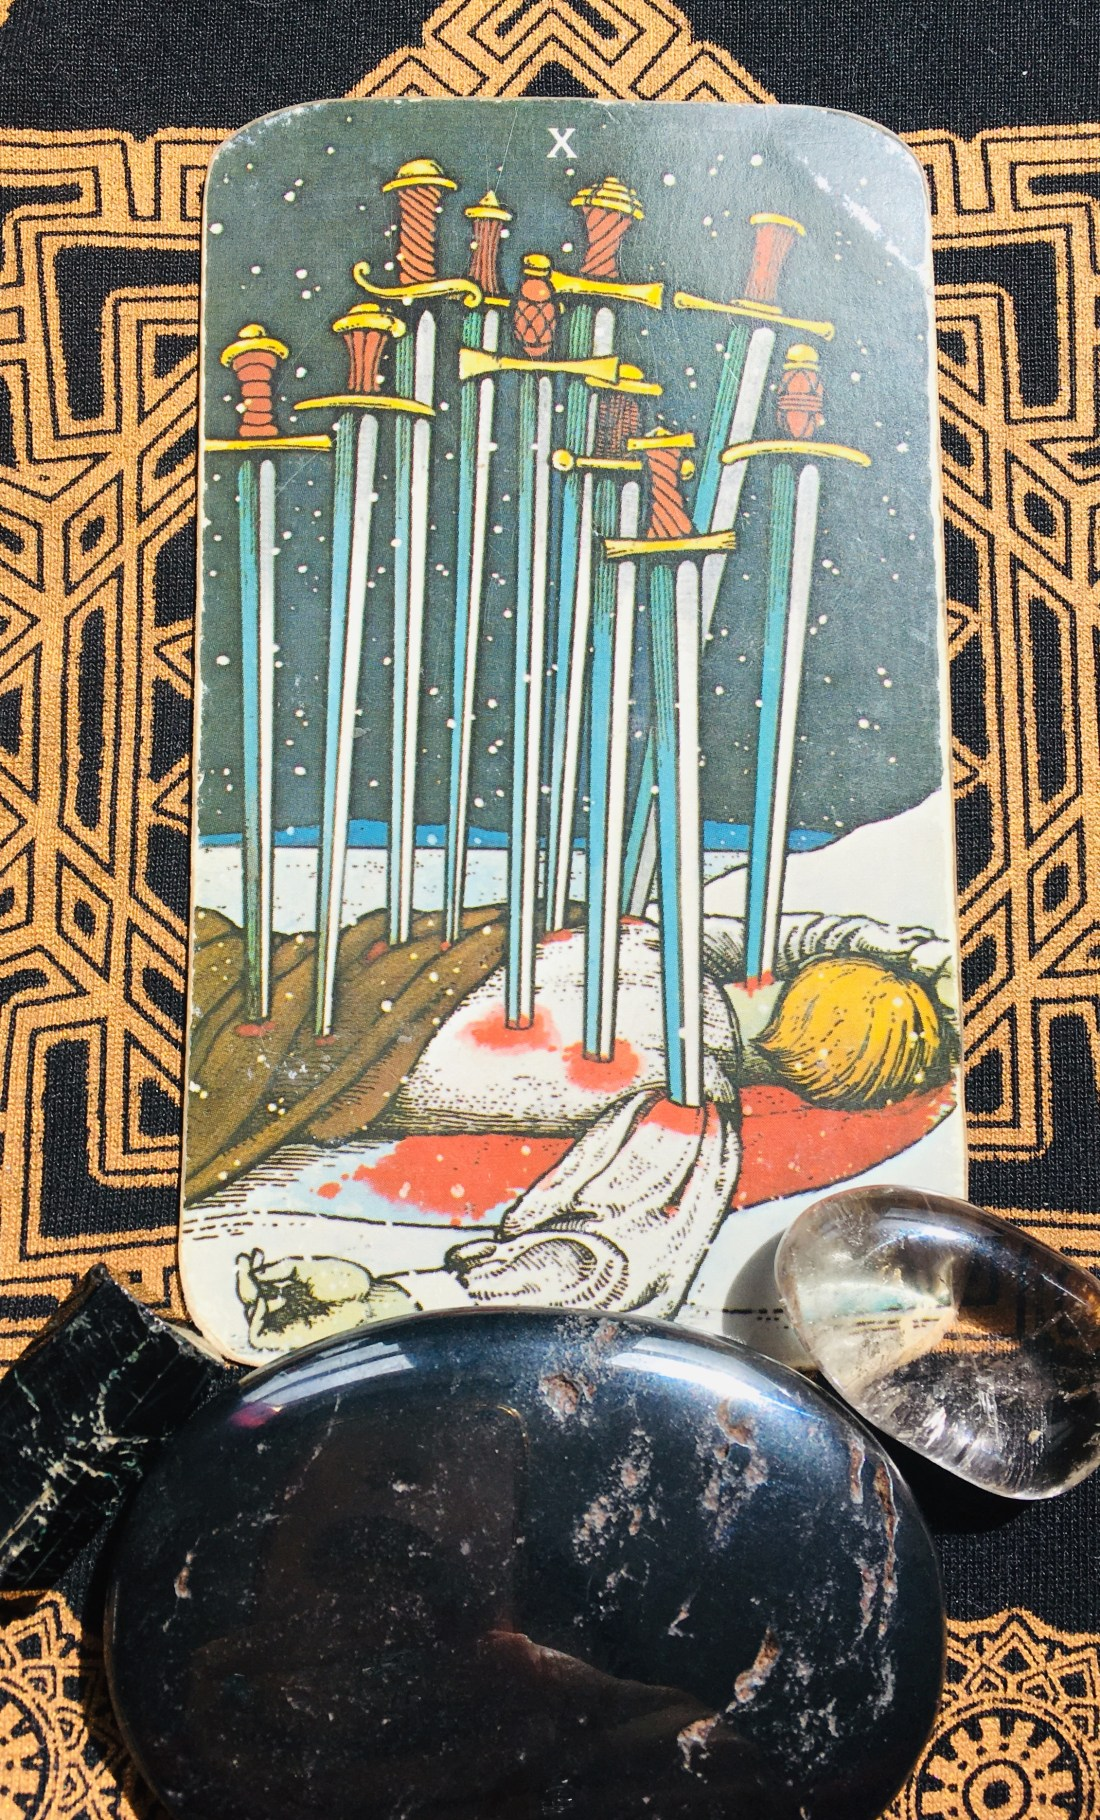 Ten of Swords, and the road to recovery